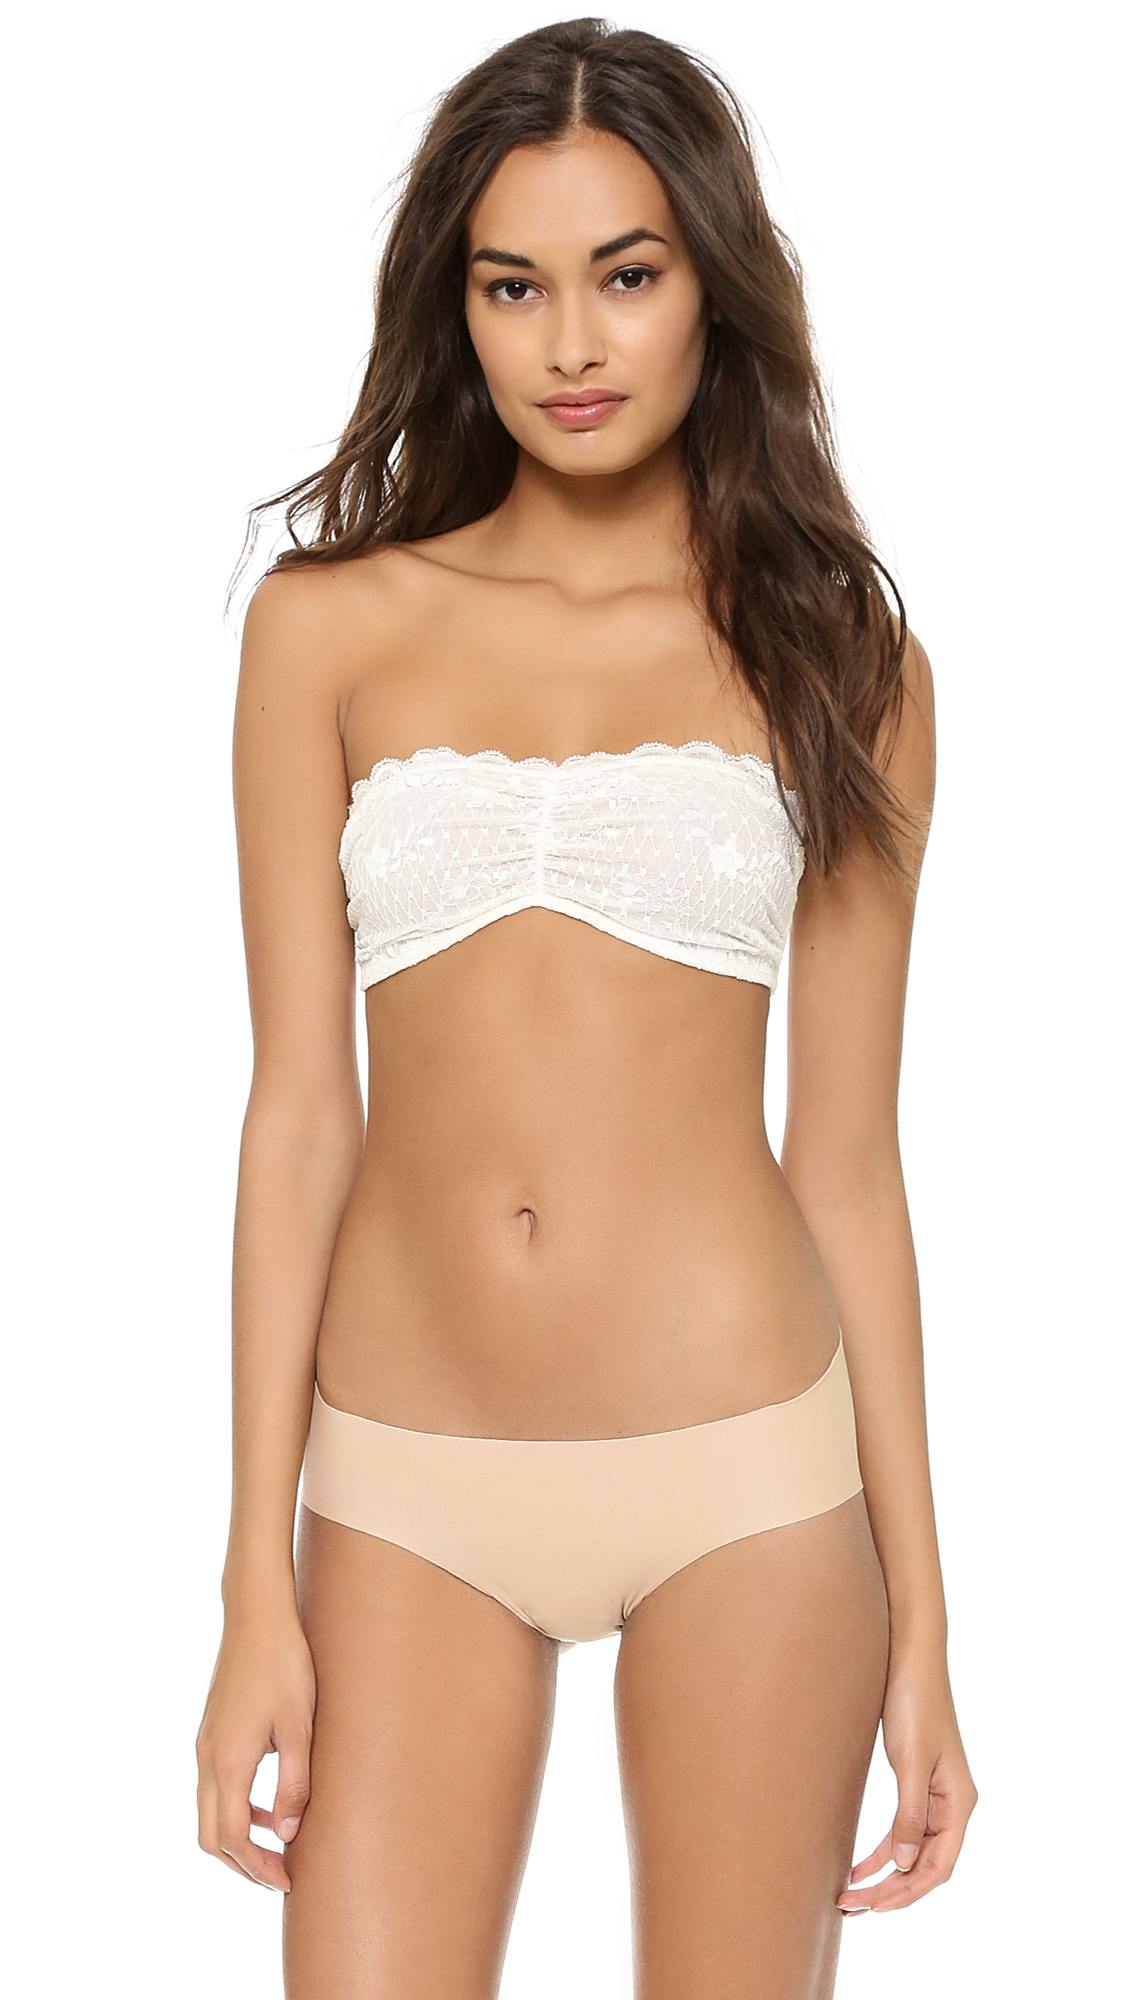 Free People Essential Lace Bandeau Bra - White